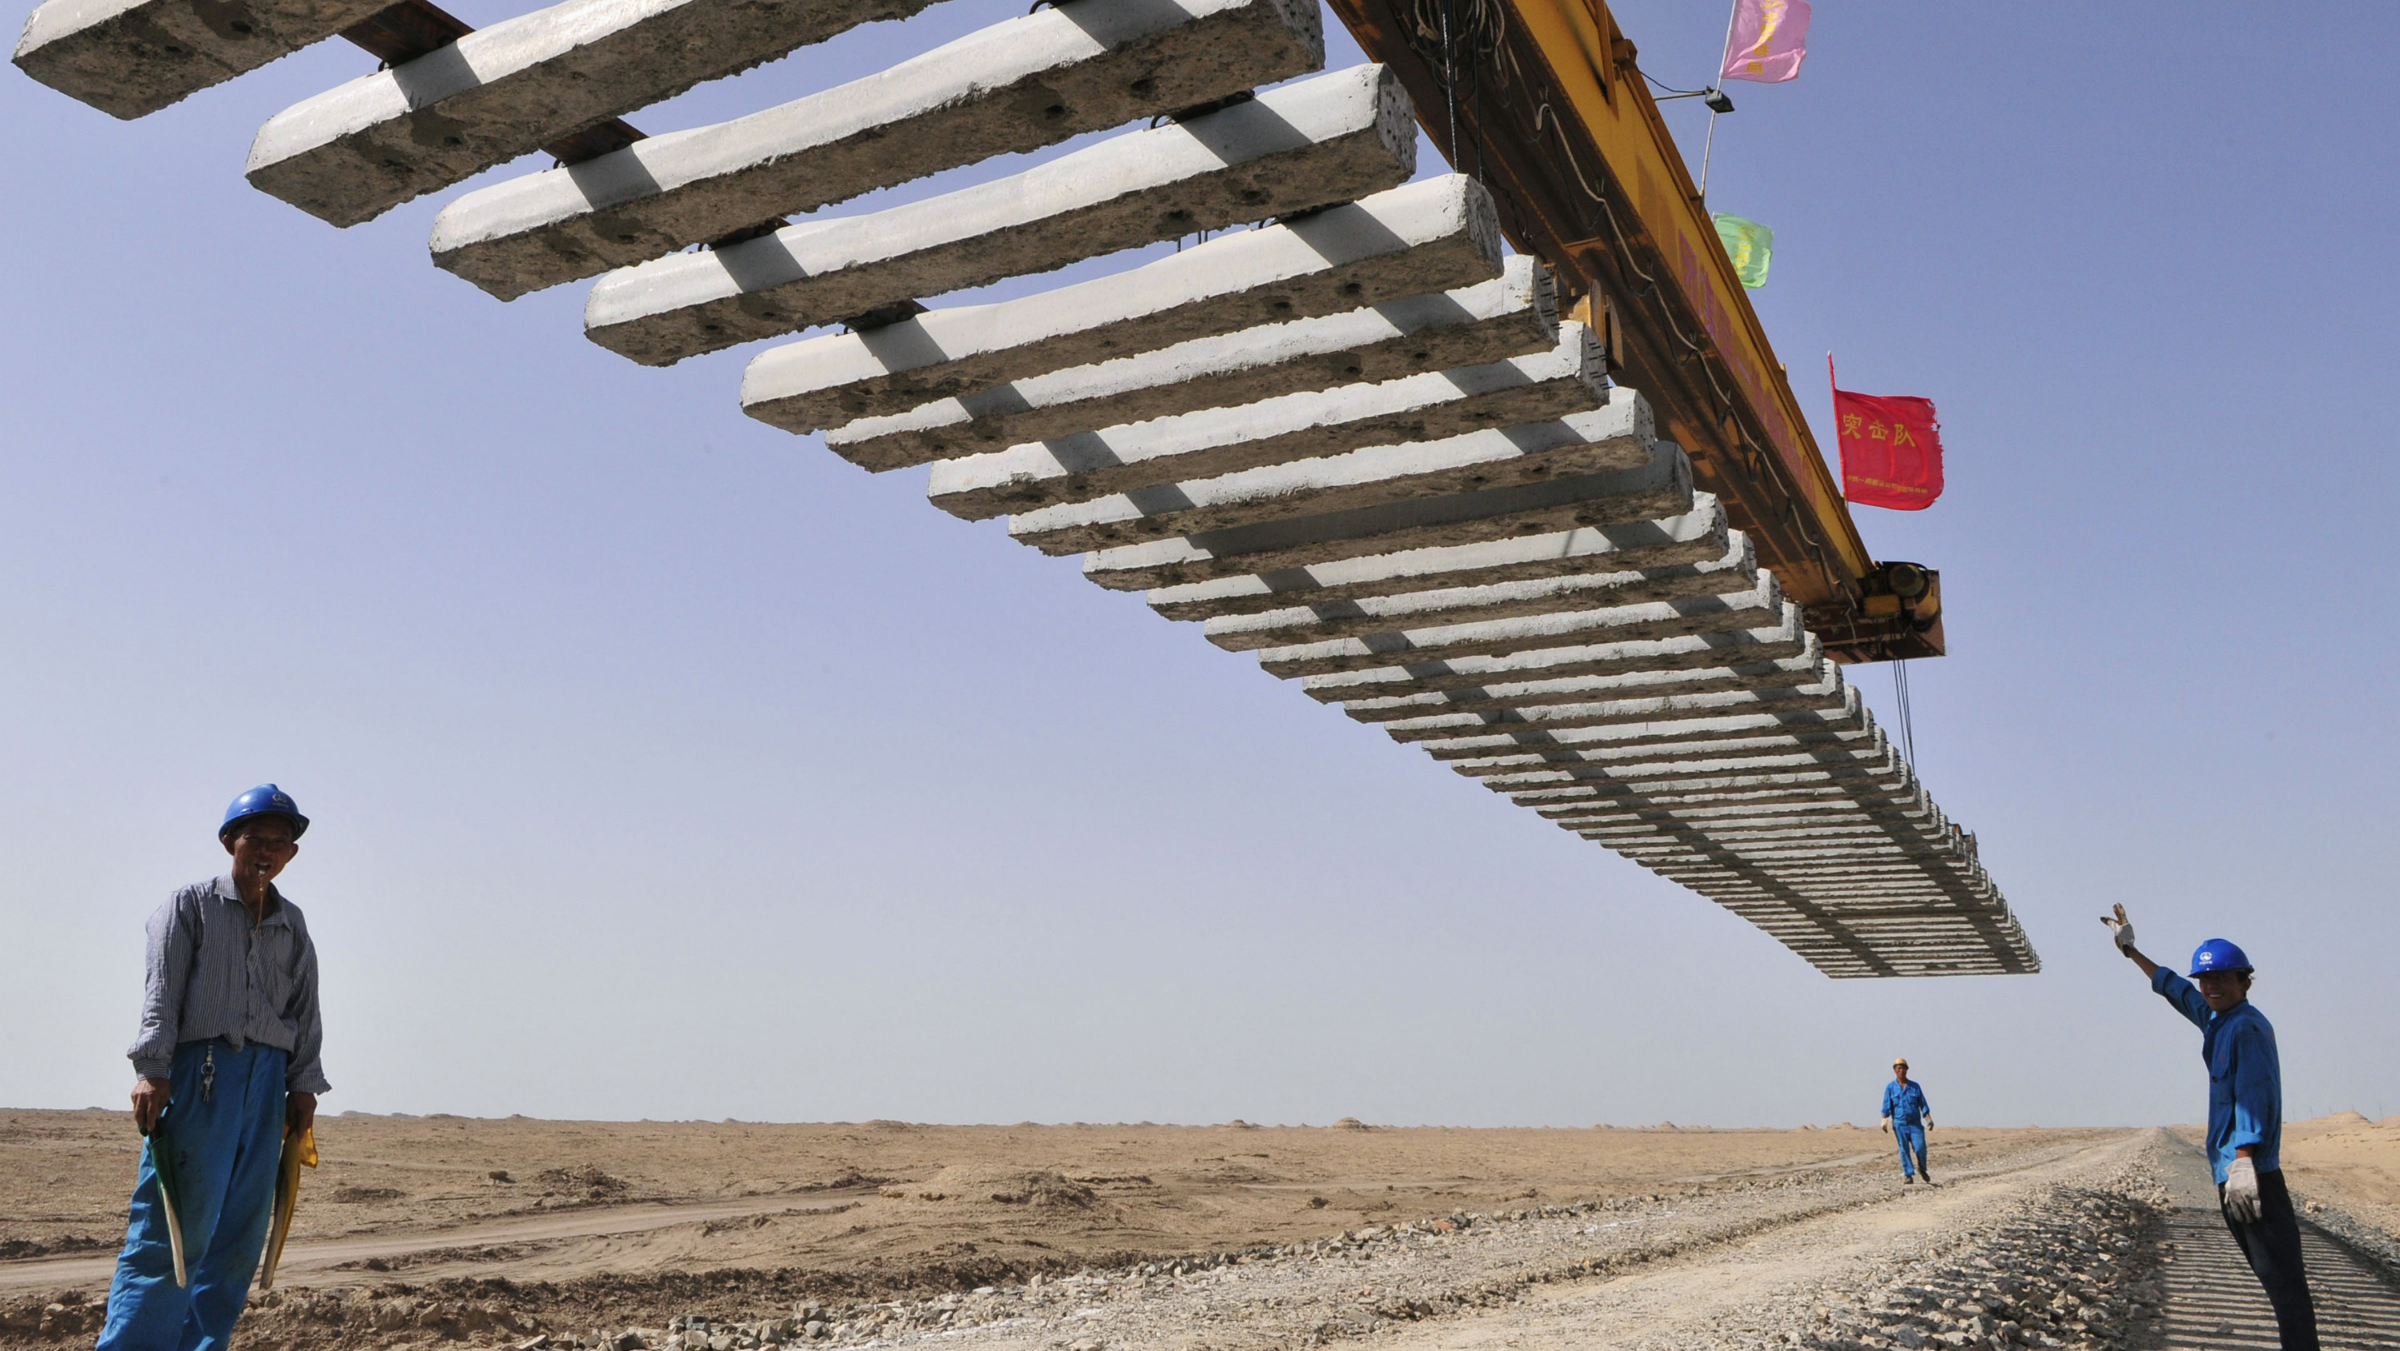 Workers direct a crane to lay a segment of tracks on the Kumul-Lop Nor line's railway bed in Lop Nor, Xinjiang Uighur Autonomous Region July 15, 2012. The line, which is the first going to Lop Nor, is estimated to be completed on July 20, 2012, local media reported. Picture taken July 15, 2012. REUTERS/Rooney Chen